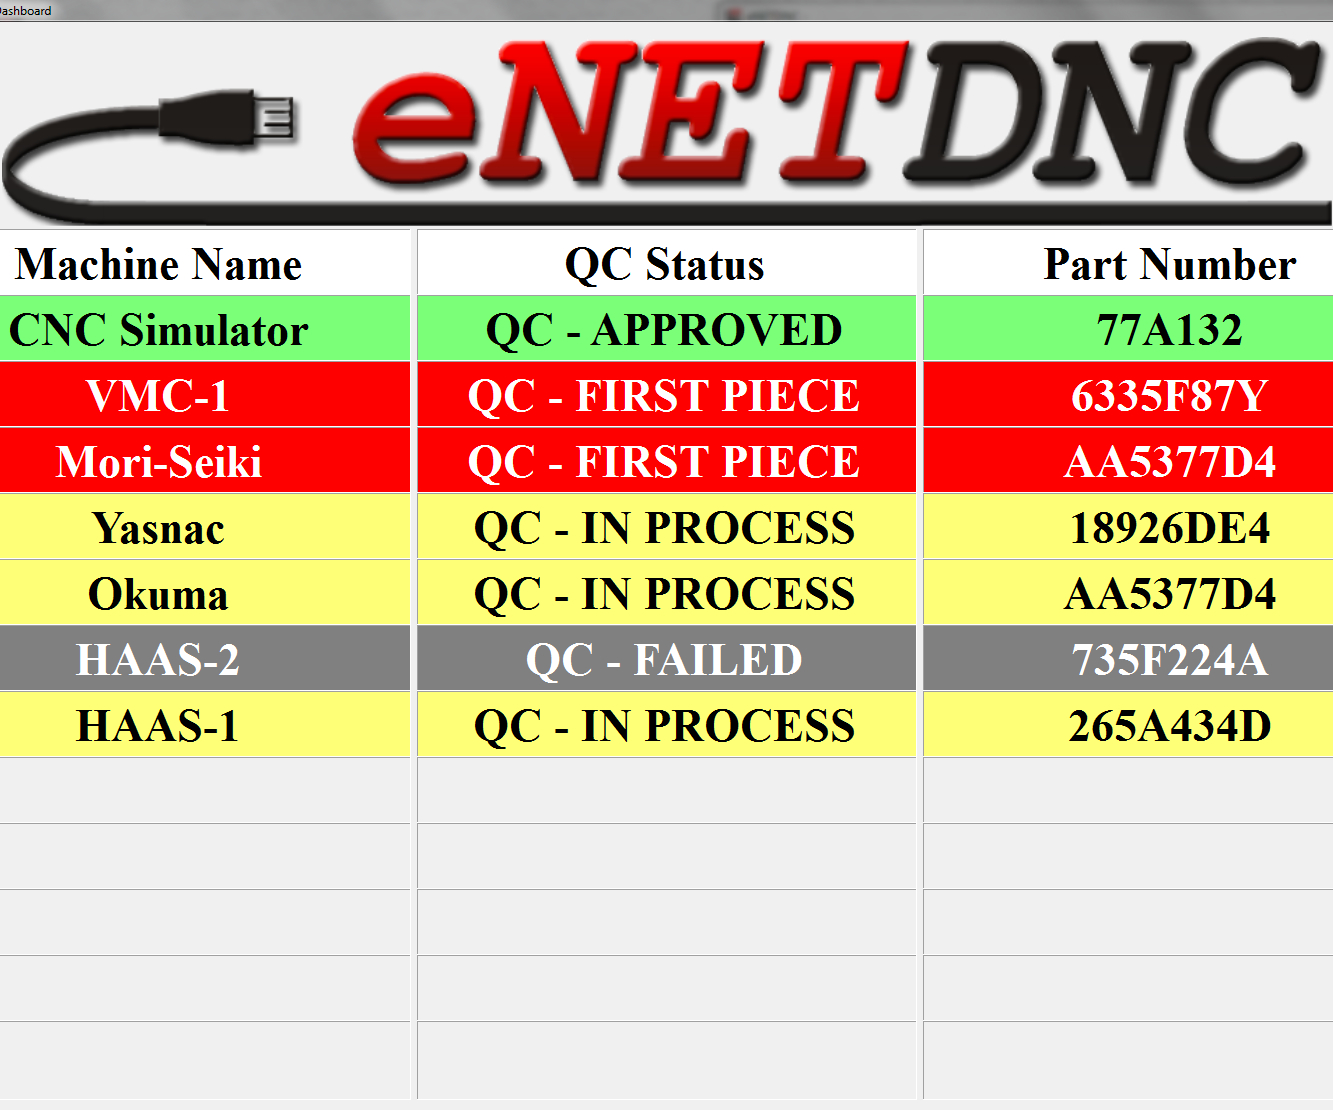 eNetDNC's QC Dashboard